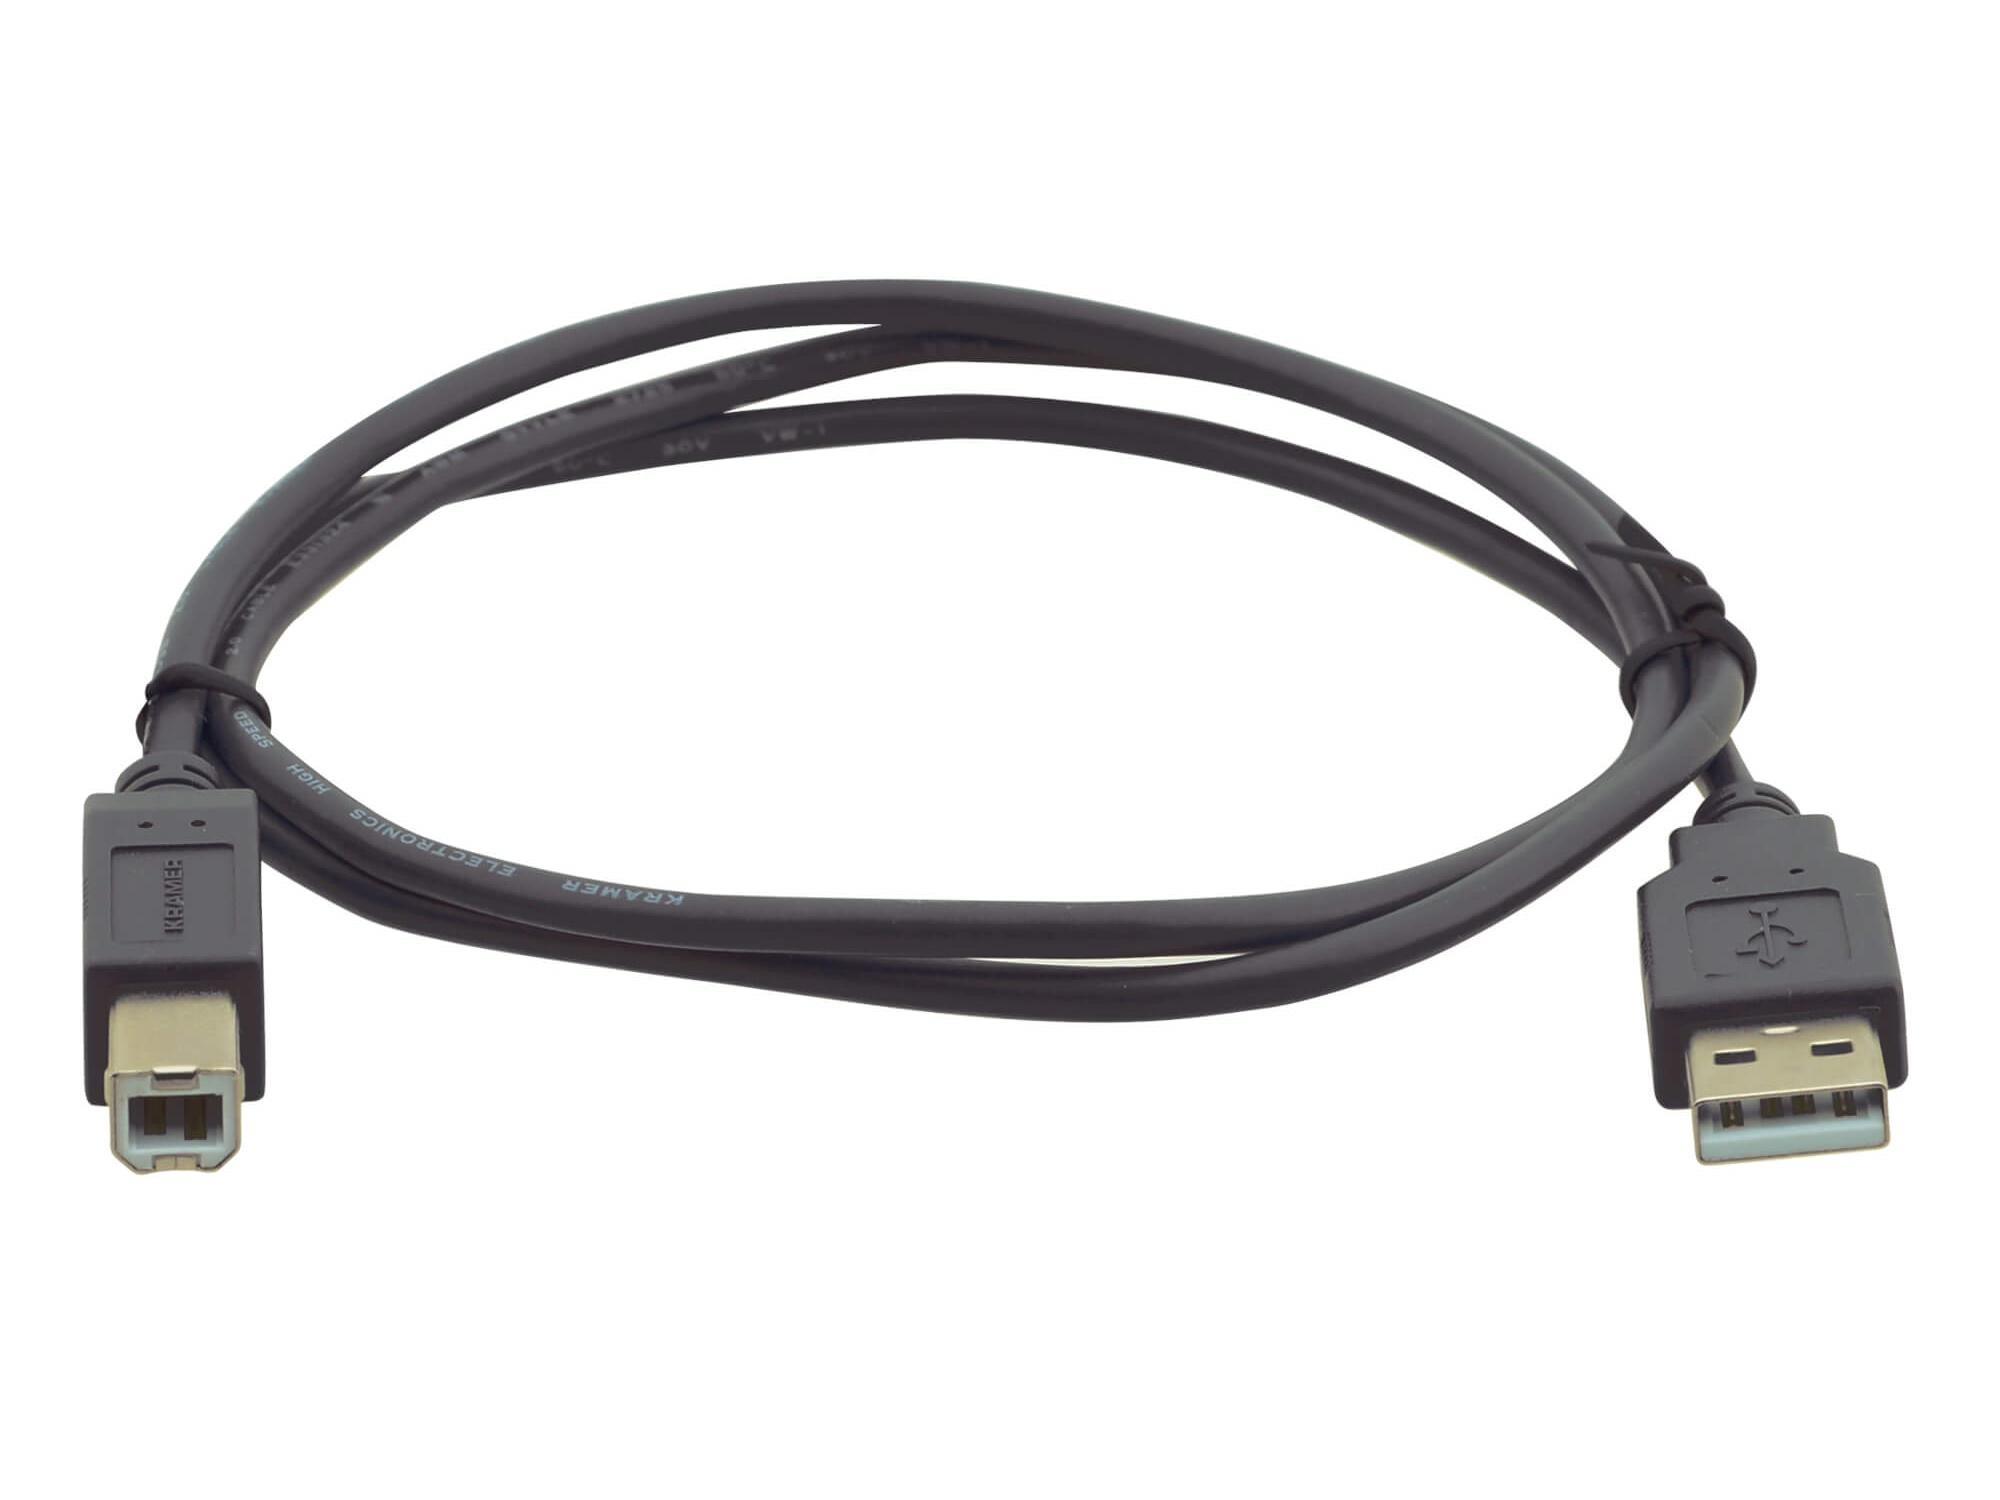 Kramer C-USB/AB-3 USB 2.0 Type A to Type B Printer Cable - 3ft